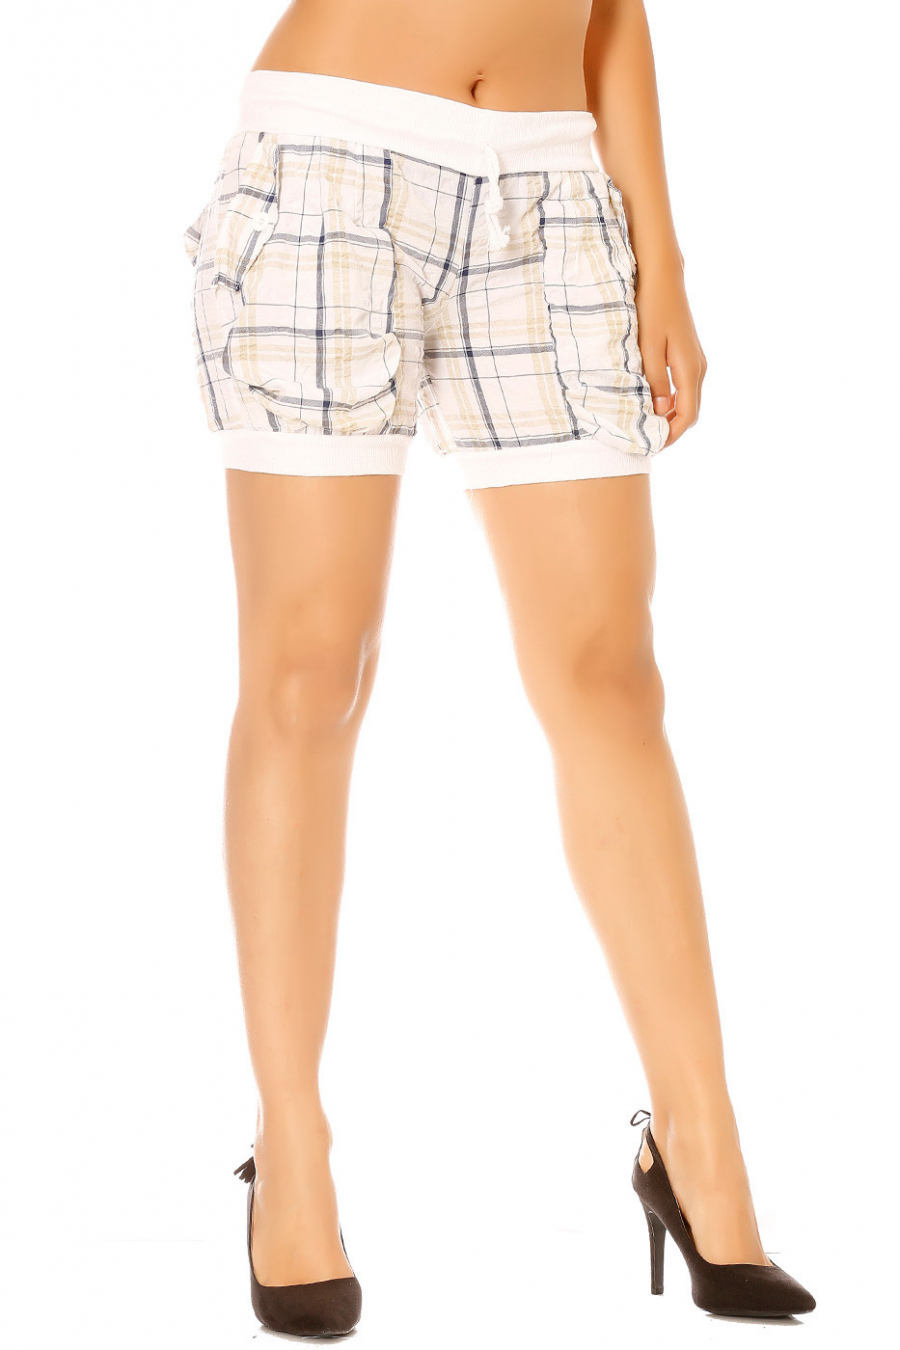 White checkered shorts with back and front pockets.